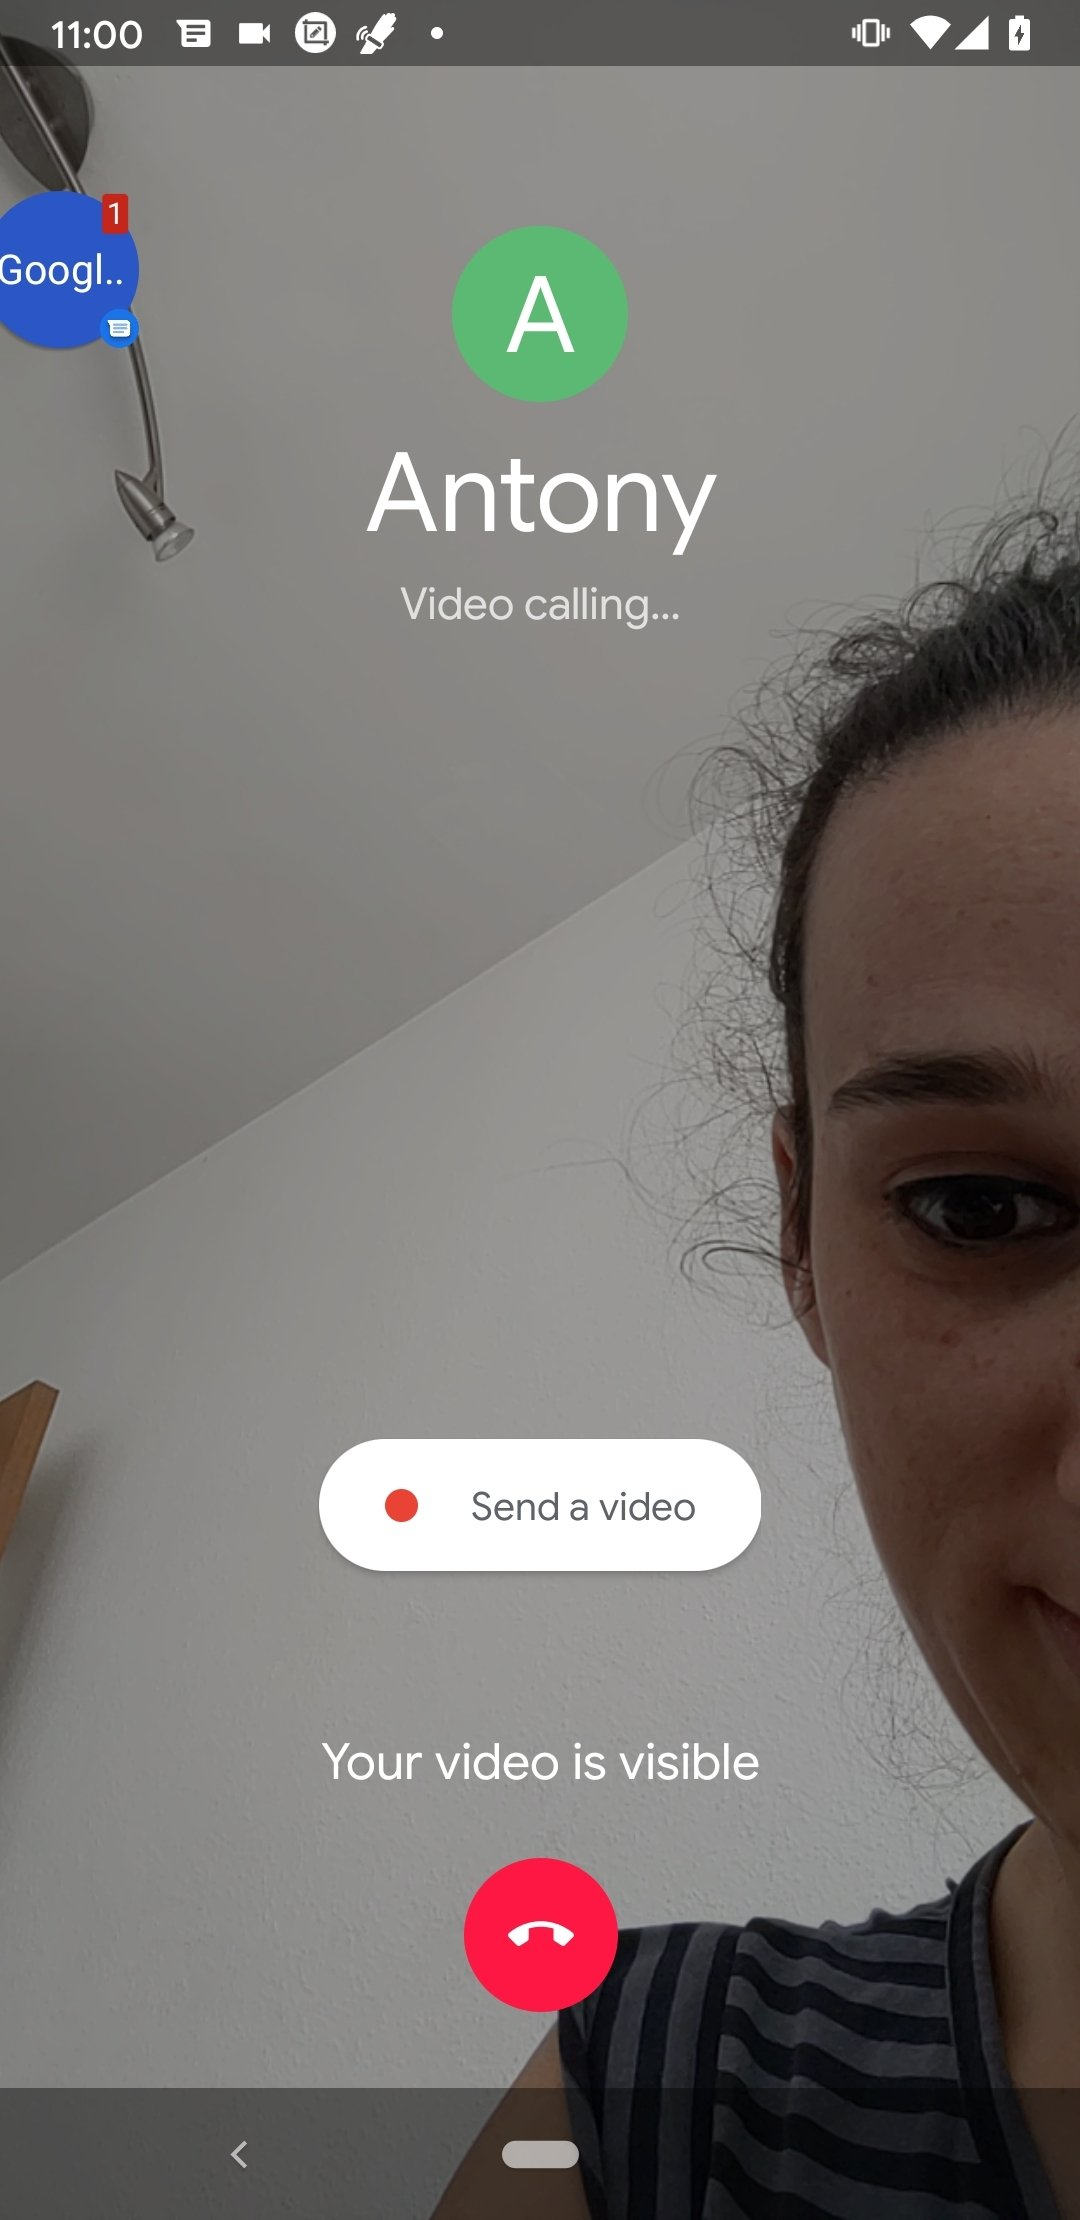 Google Duo Android image 4